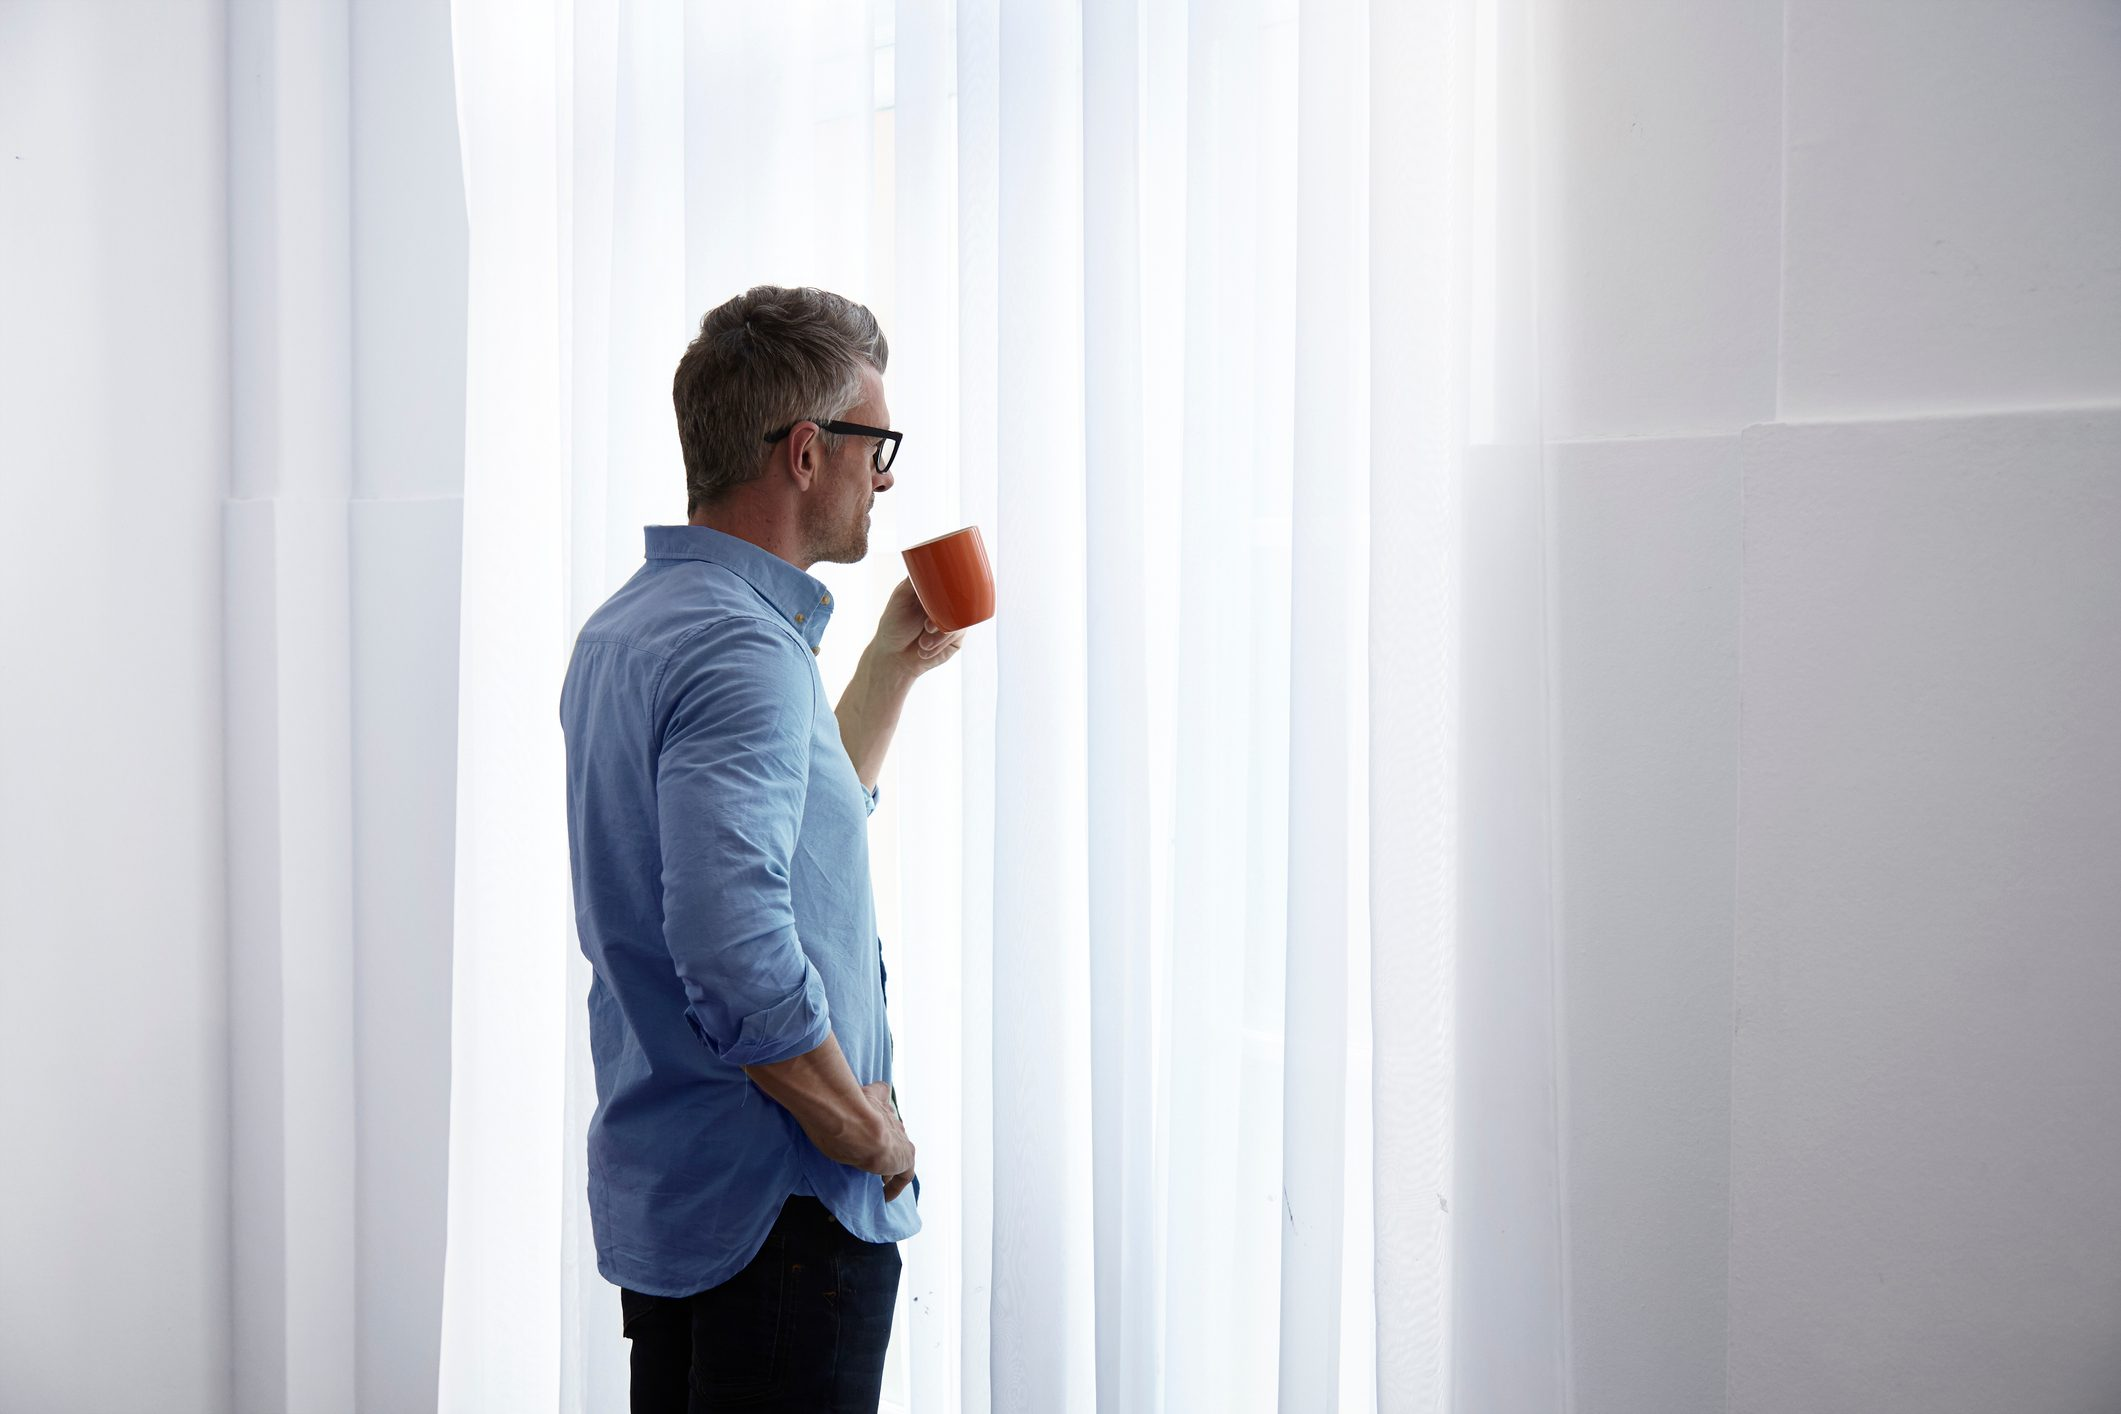 man standing in home looking out window and holding coffee mug